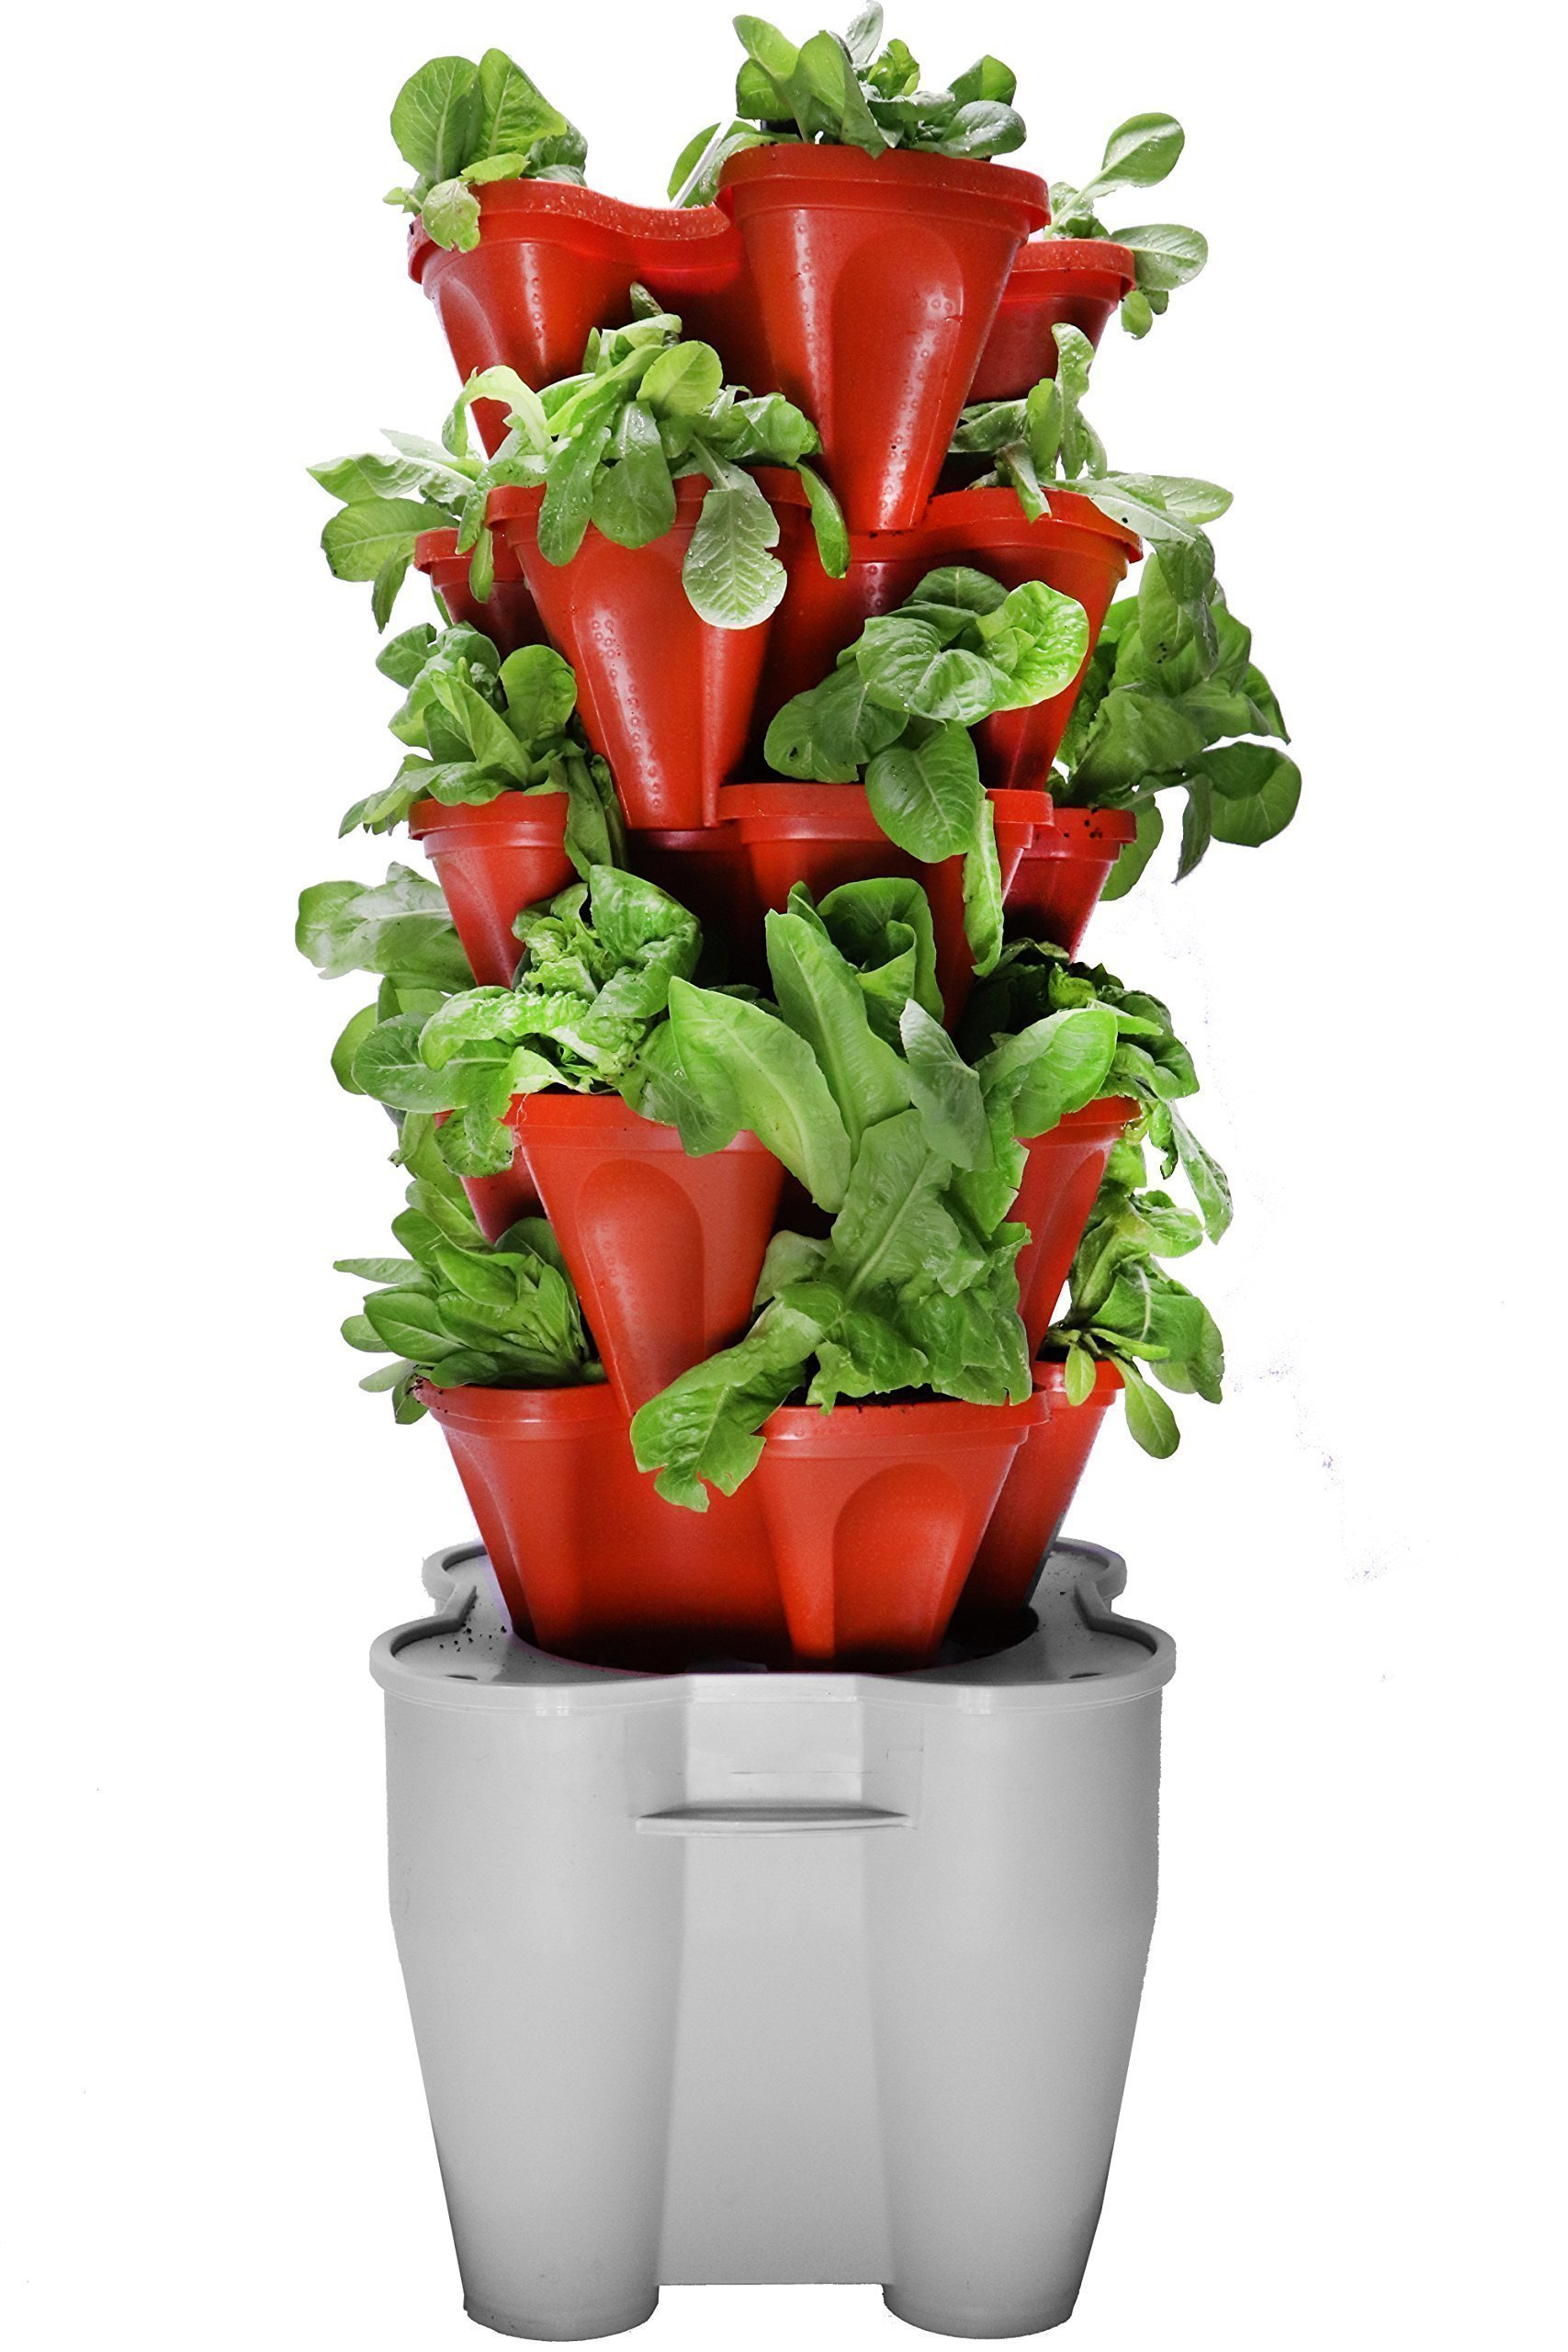 Smart Farm - Automatic Self Watering Garden - Grow Fresh Healthy Food Virtually Anywhere Year Round - Soil or Hydroponic Vertical Tower Gardening System By Mr Stacky (Standard Kit, Terracotta)